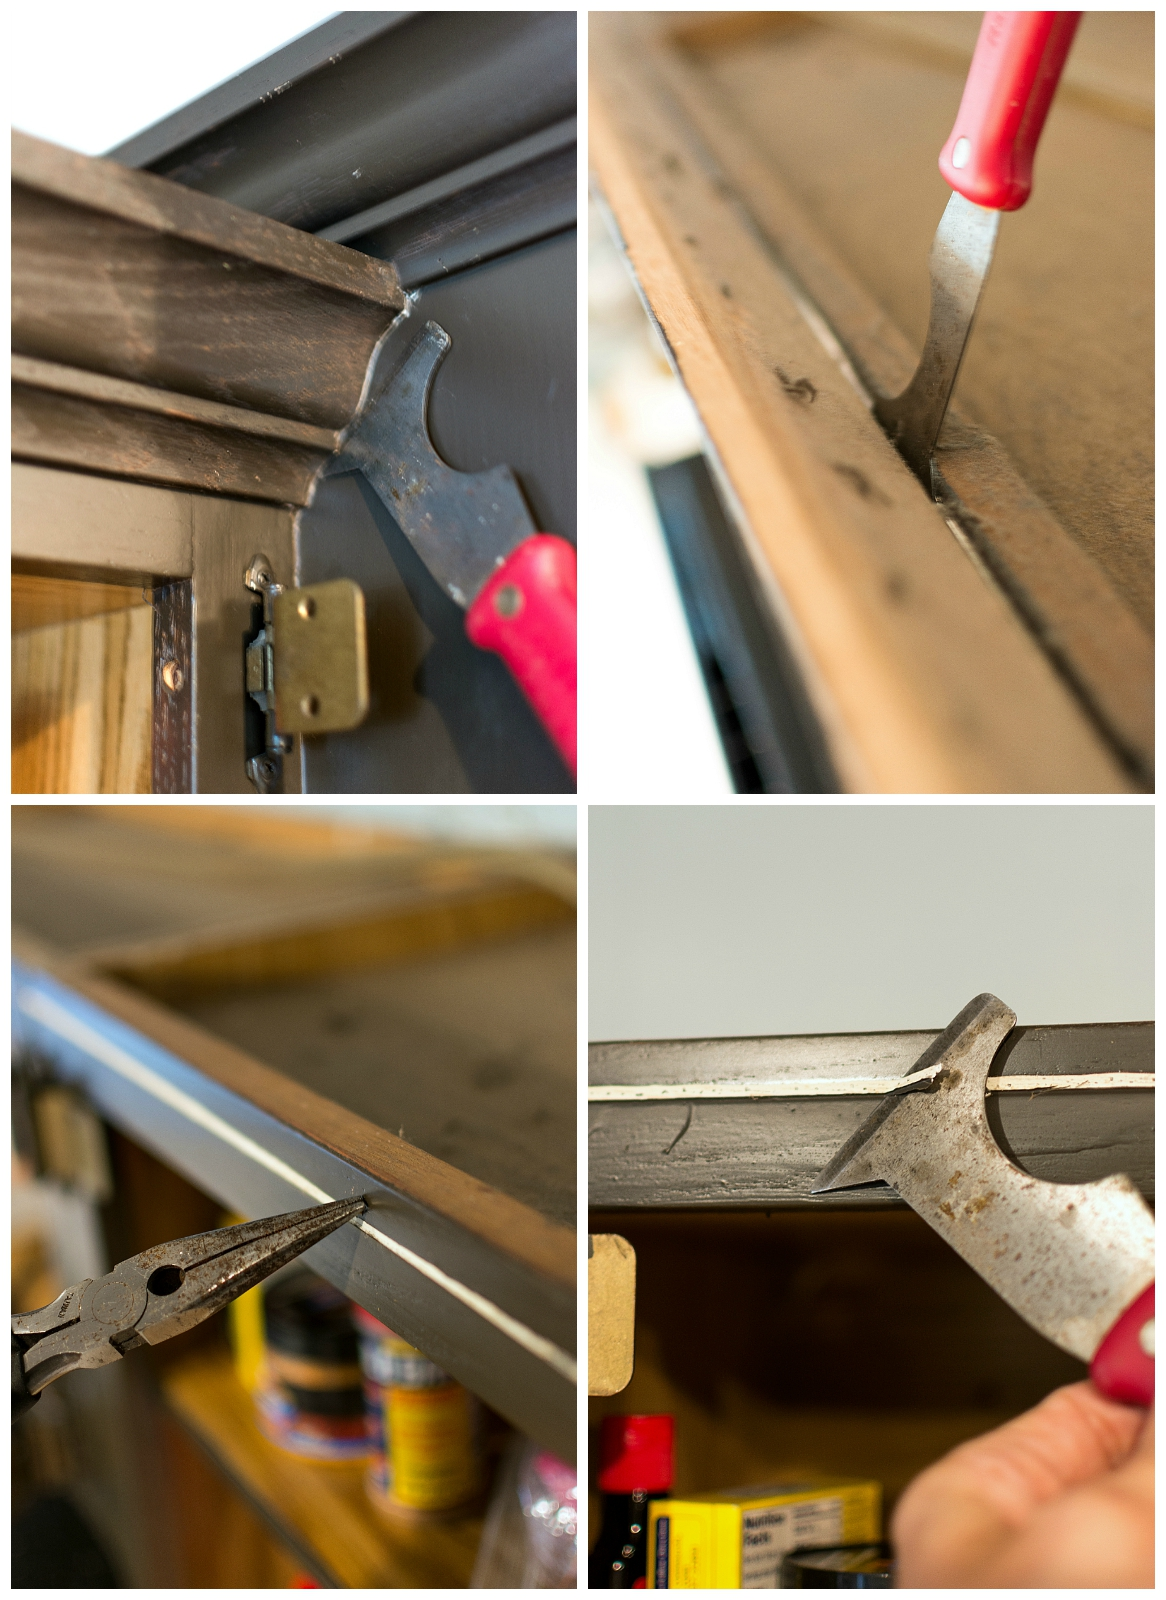 Removing Crown Moulding From Kitchen Cabinets: Easy, Damage Free Way to Remove Molding